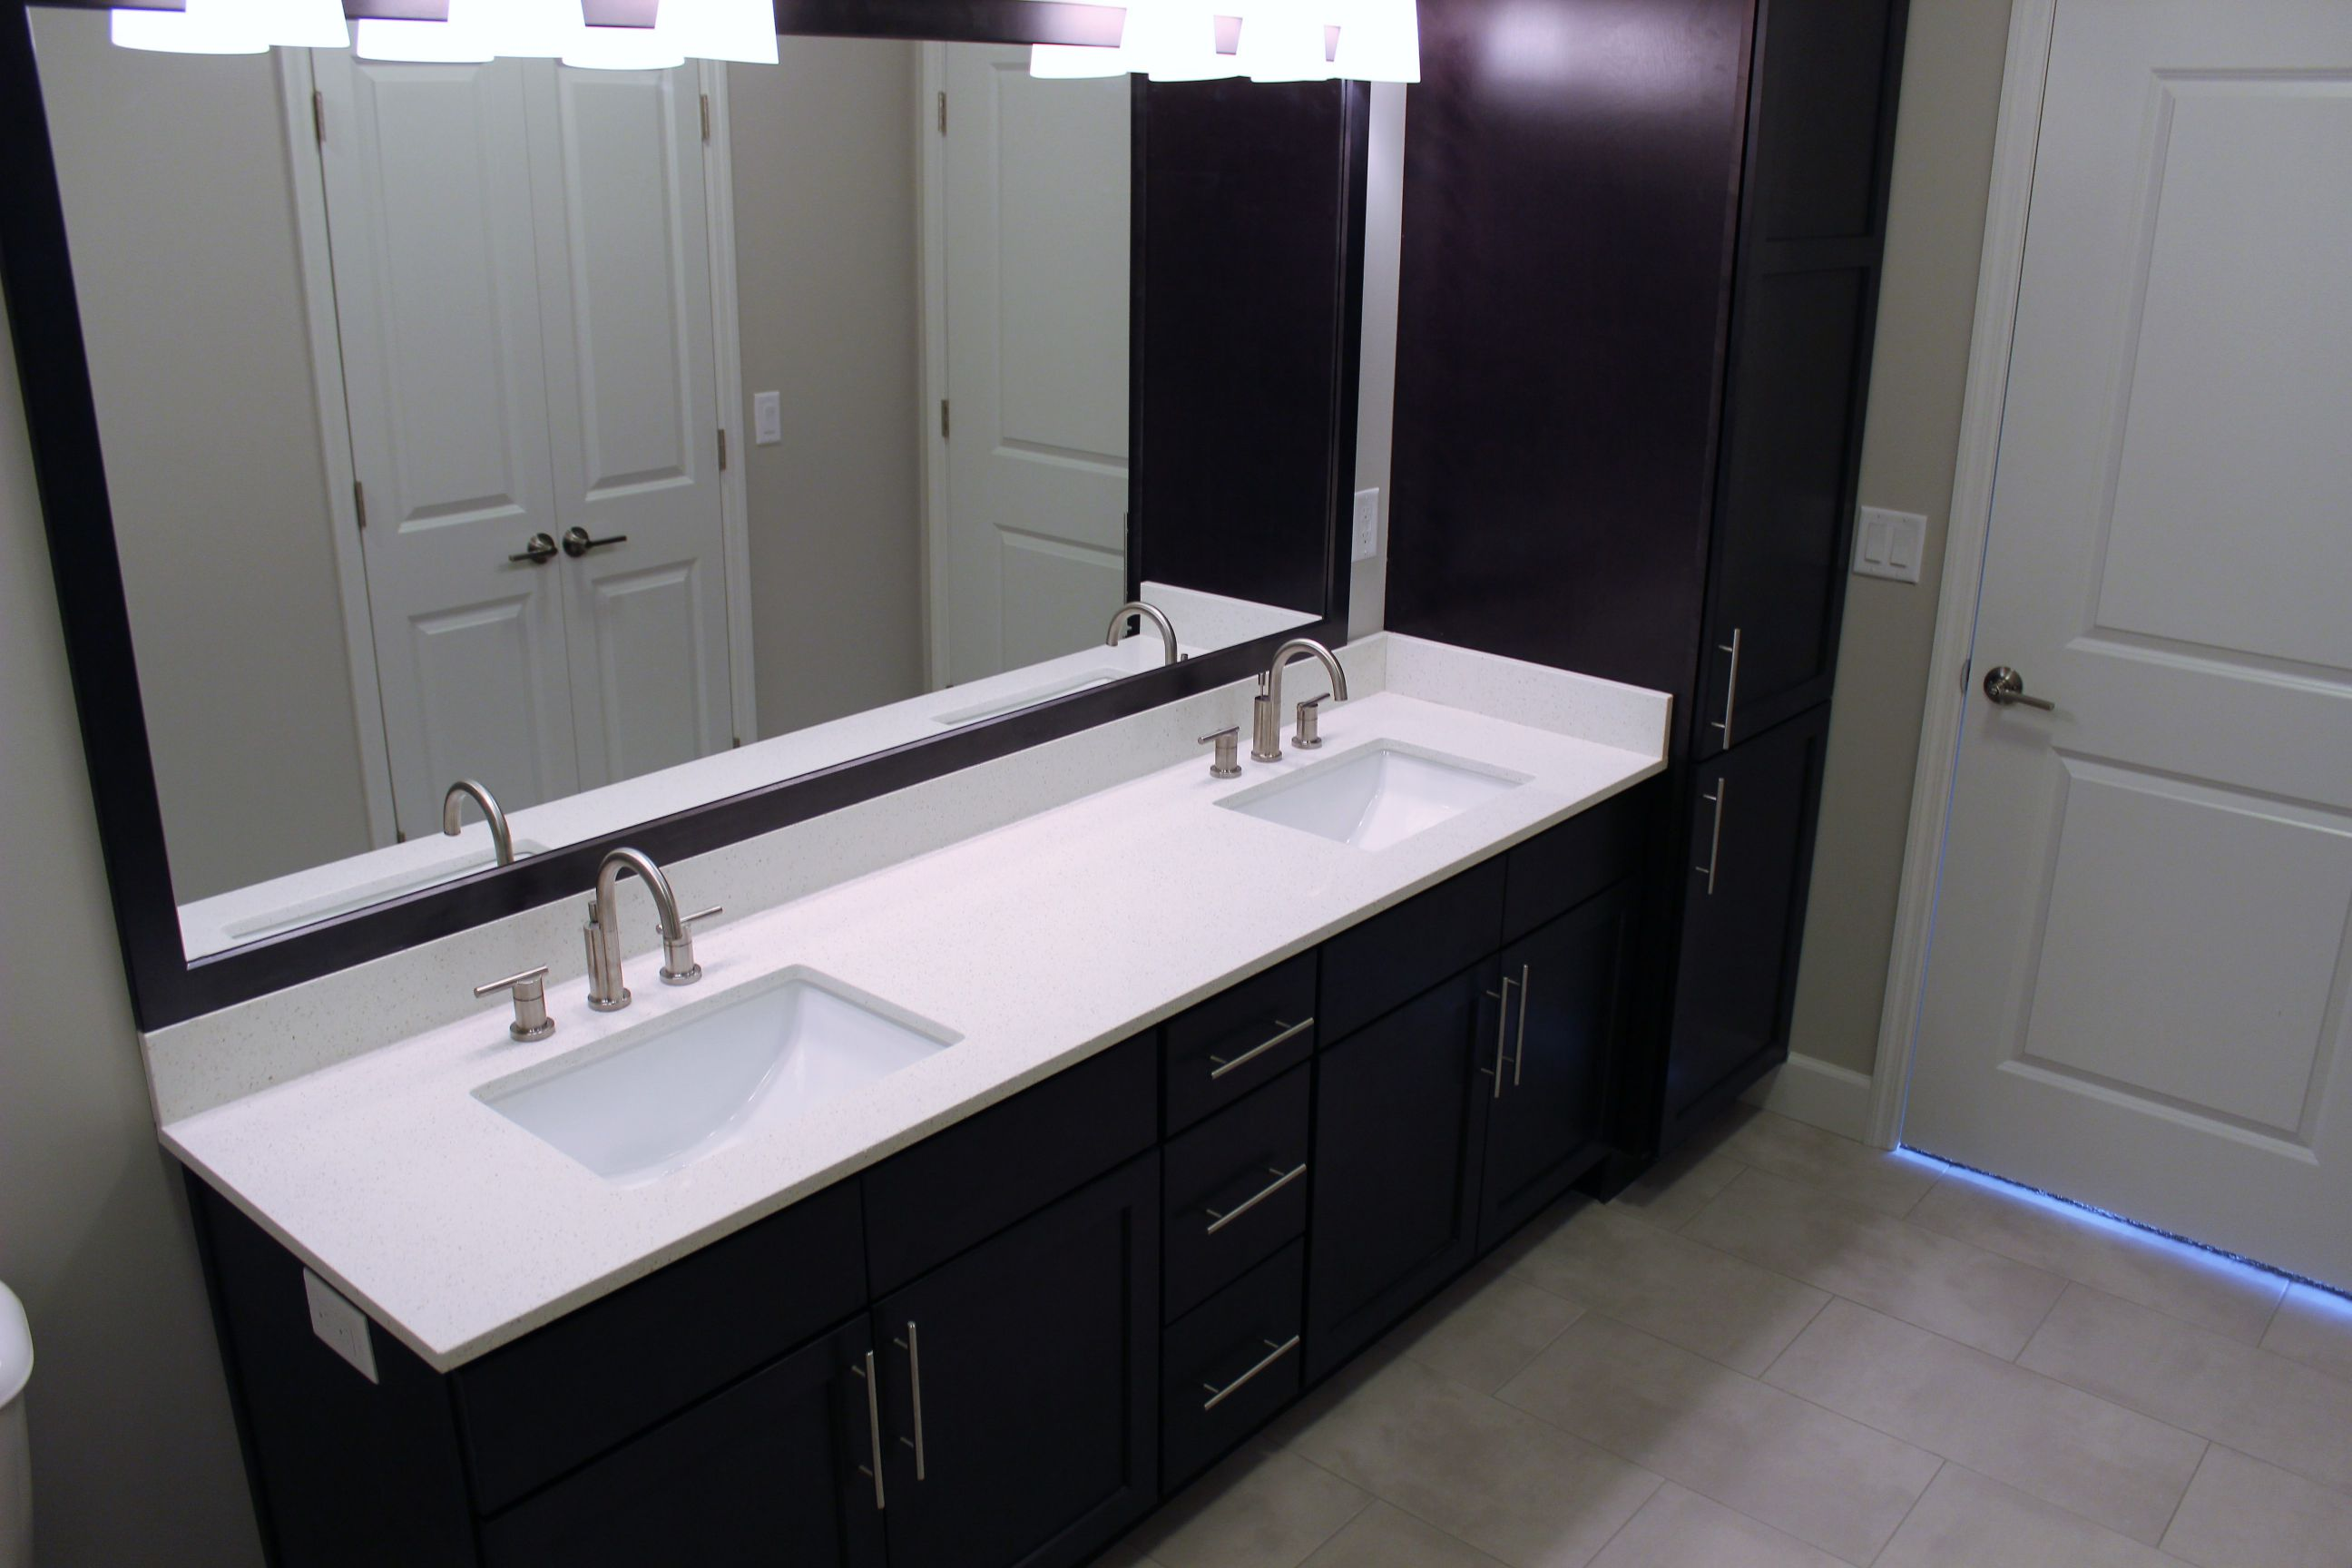 Bathroom at the Vue at Creve Coeur Apartments in Creve Coeur, MO